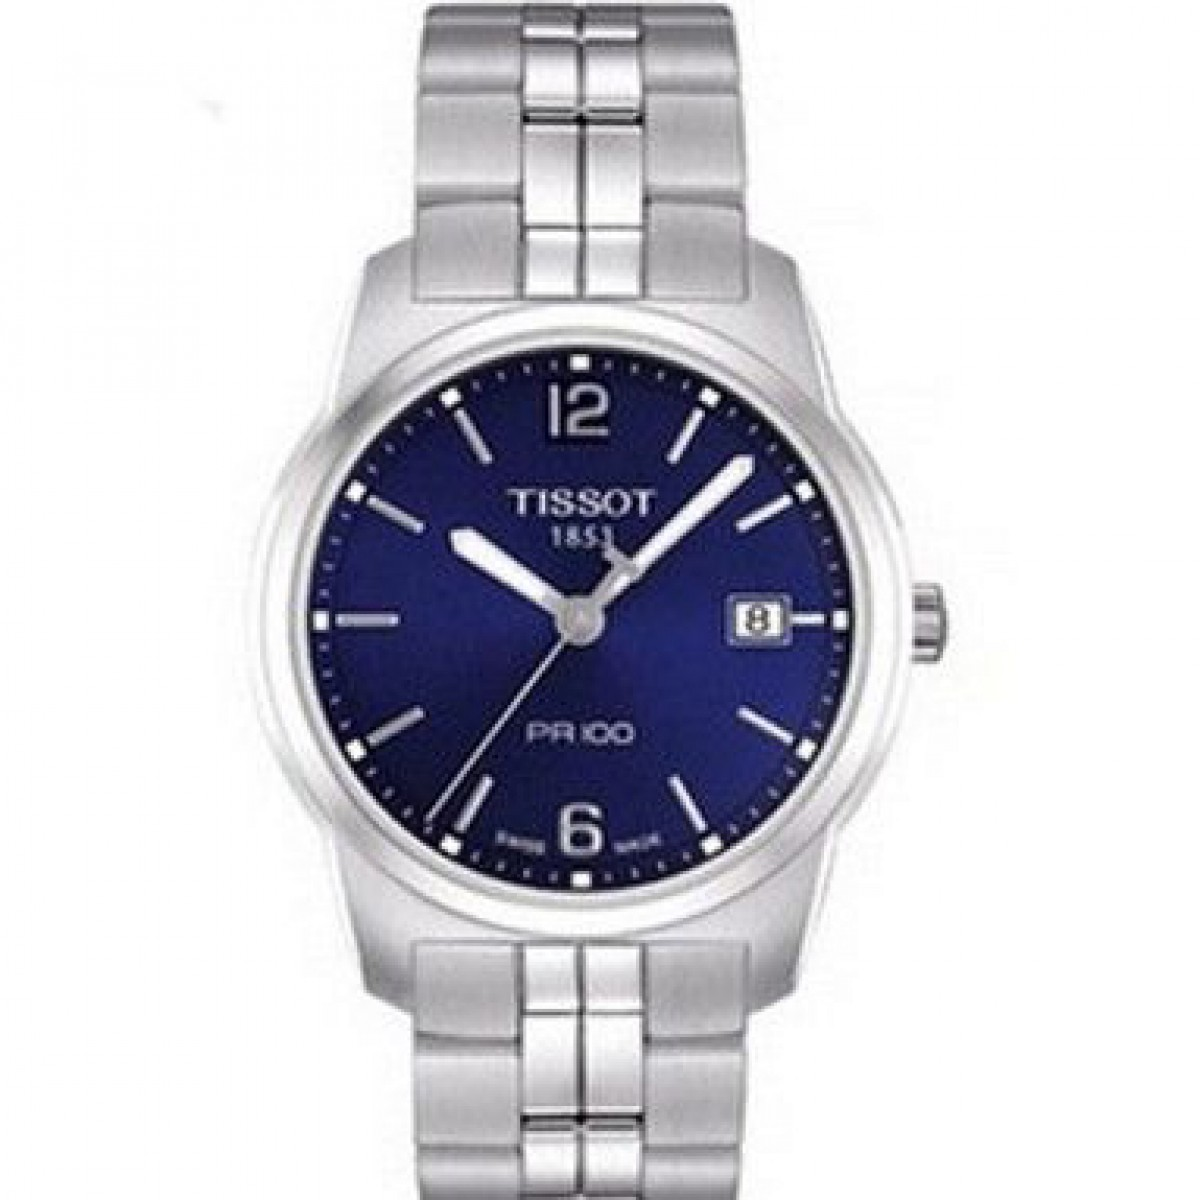 Mens Tissot PR100 Watch T0494101104700